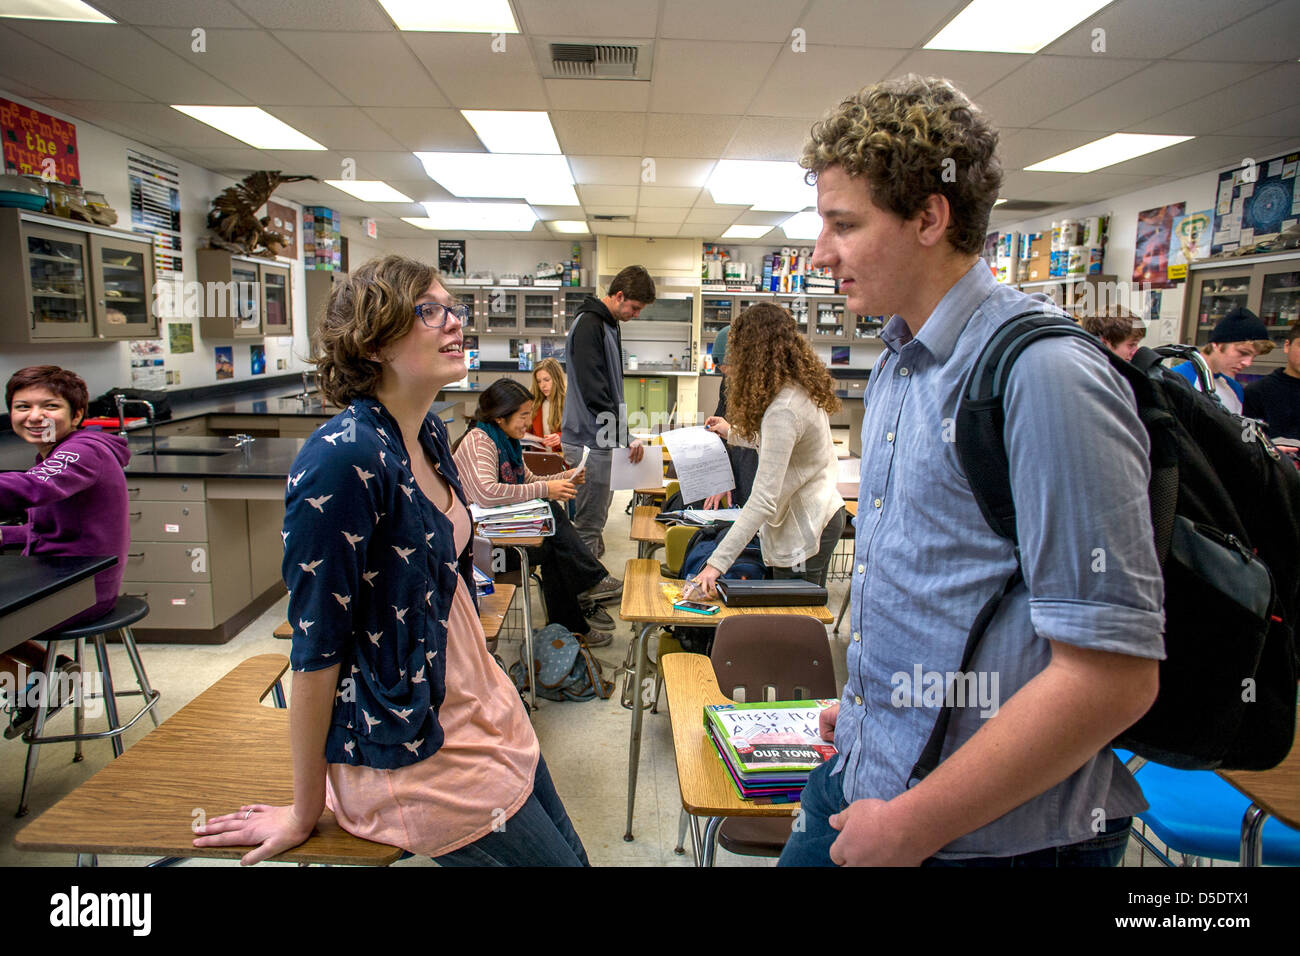 Advanced placement (AP) high school chemistry students talk before class and check their graded papers in San Clemente, - Stock Image